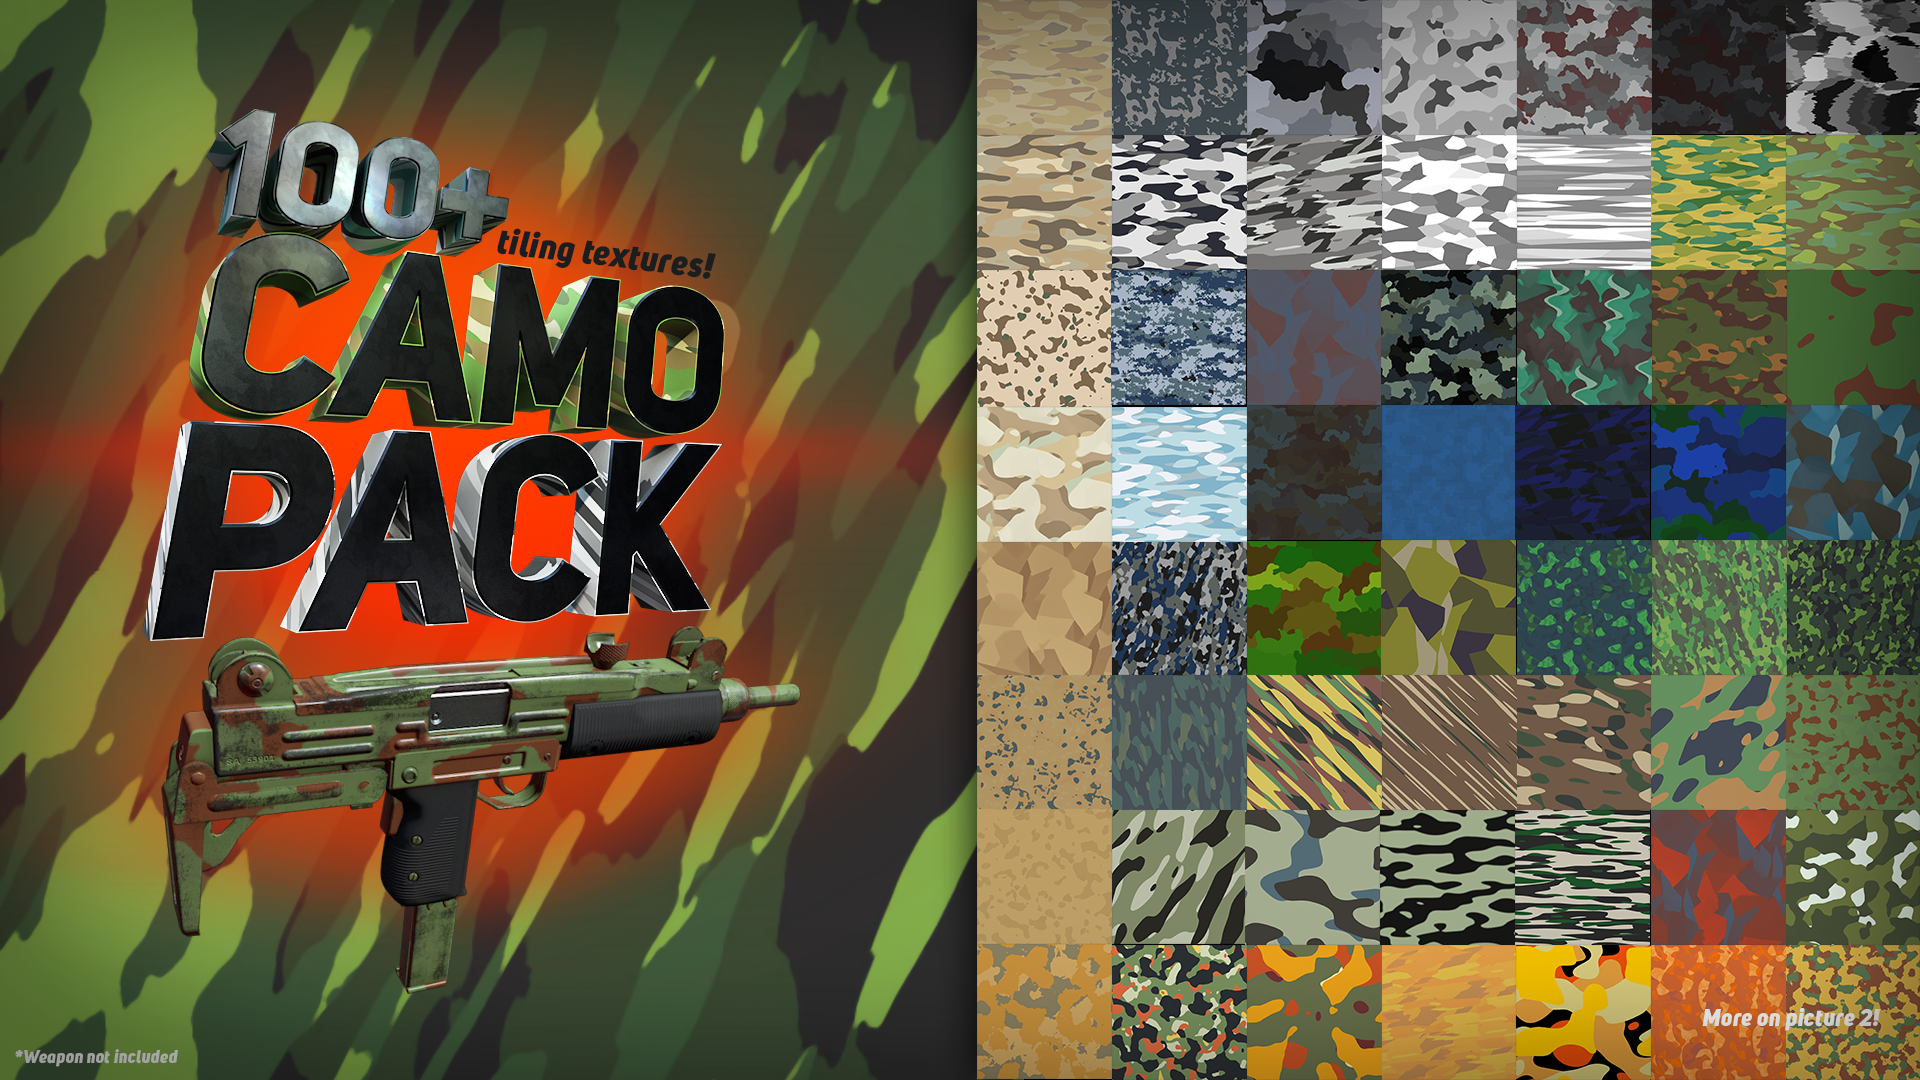 100+ Camouflage Texture Pack by Eric Krutten